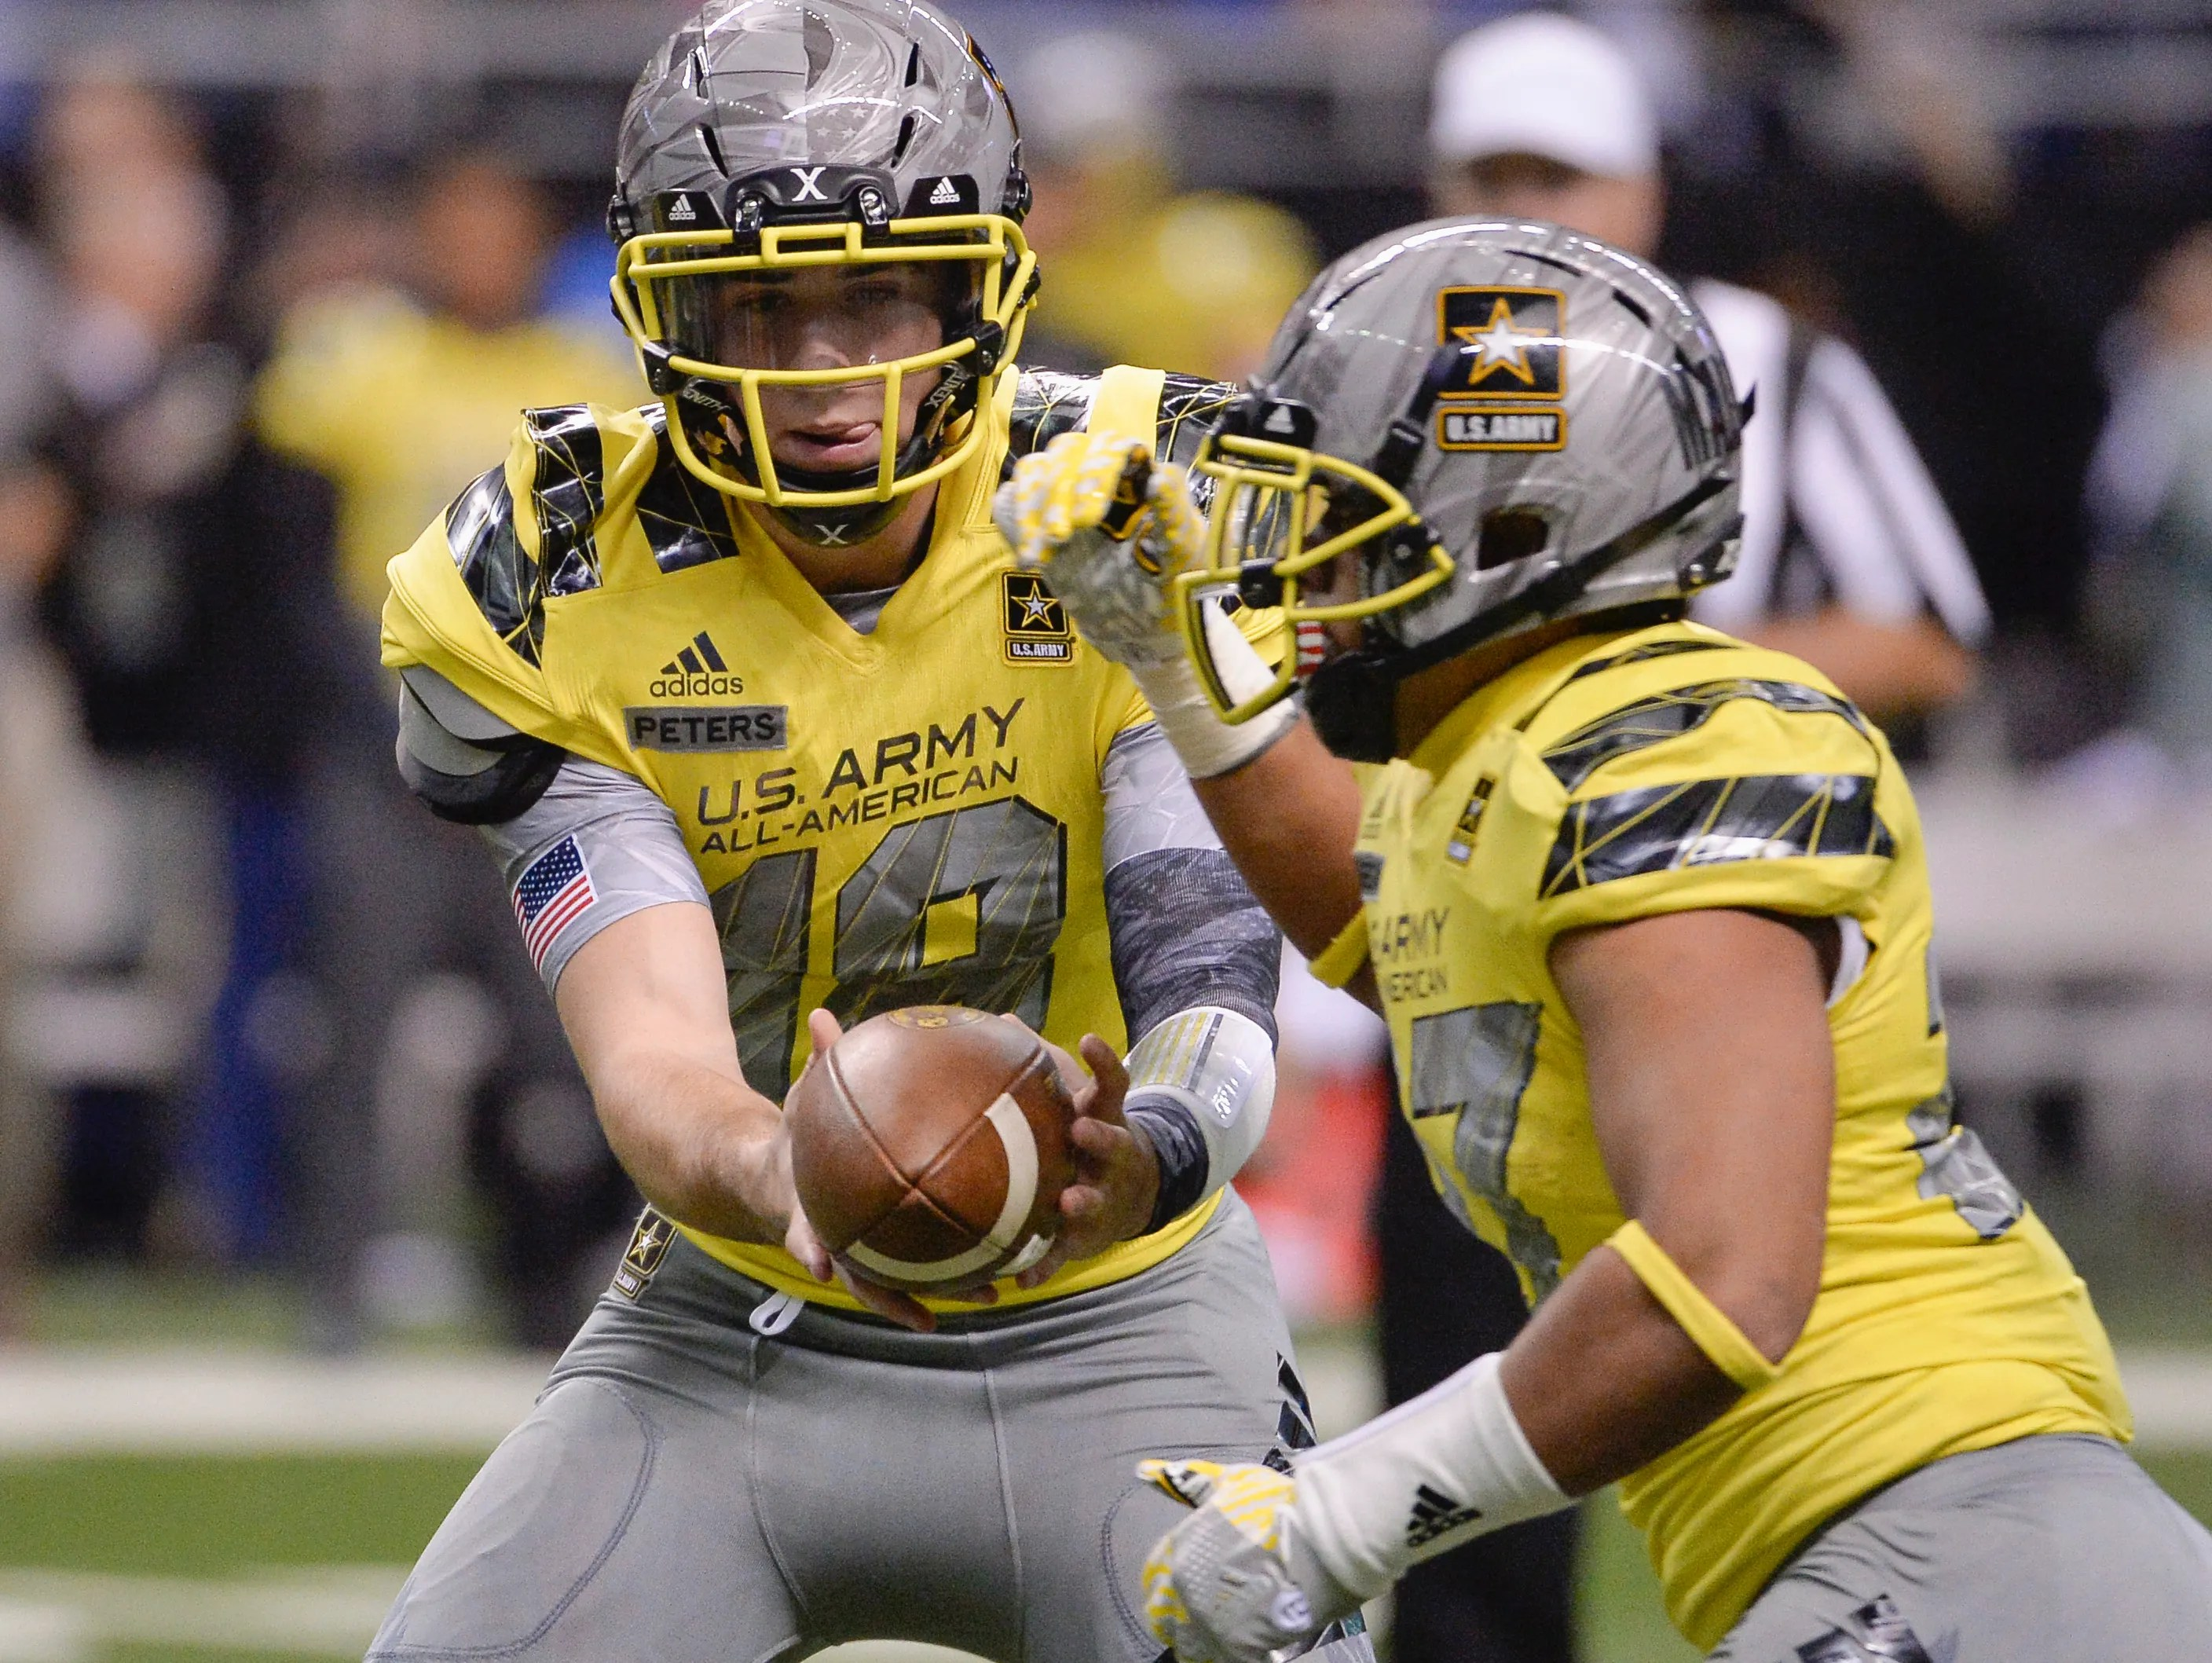 ... Army All American Bowl high school football game against the East